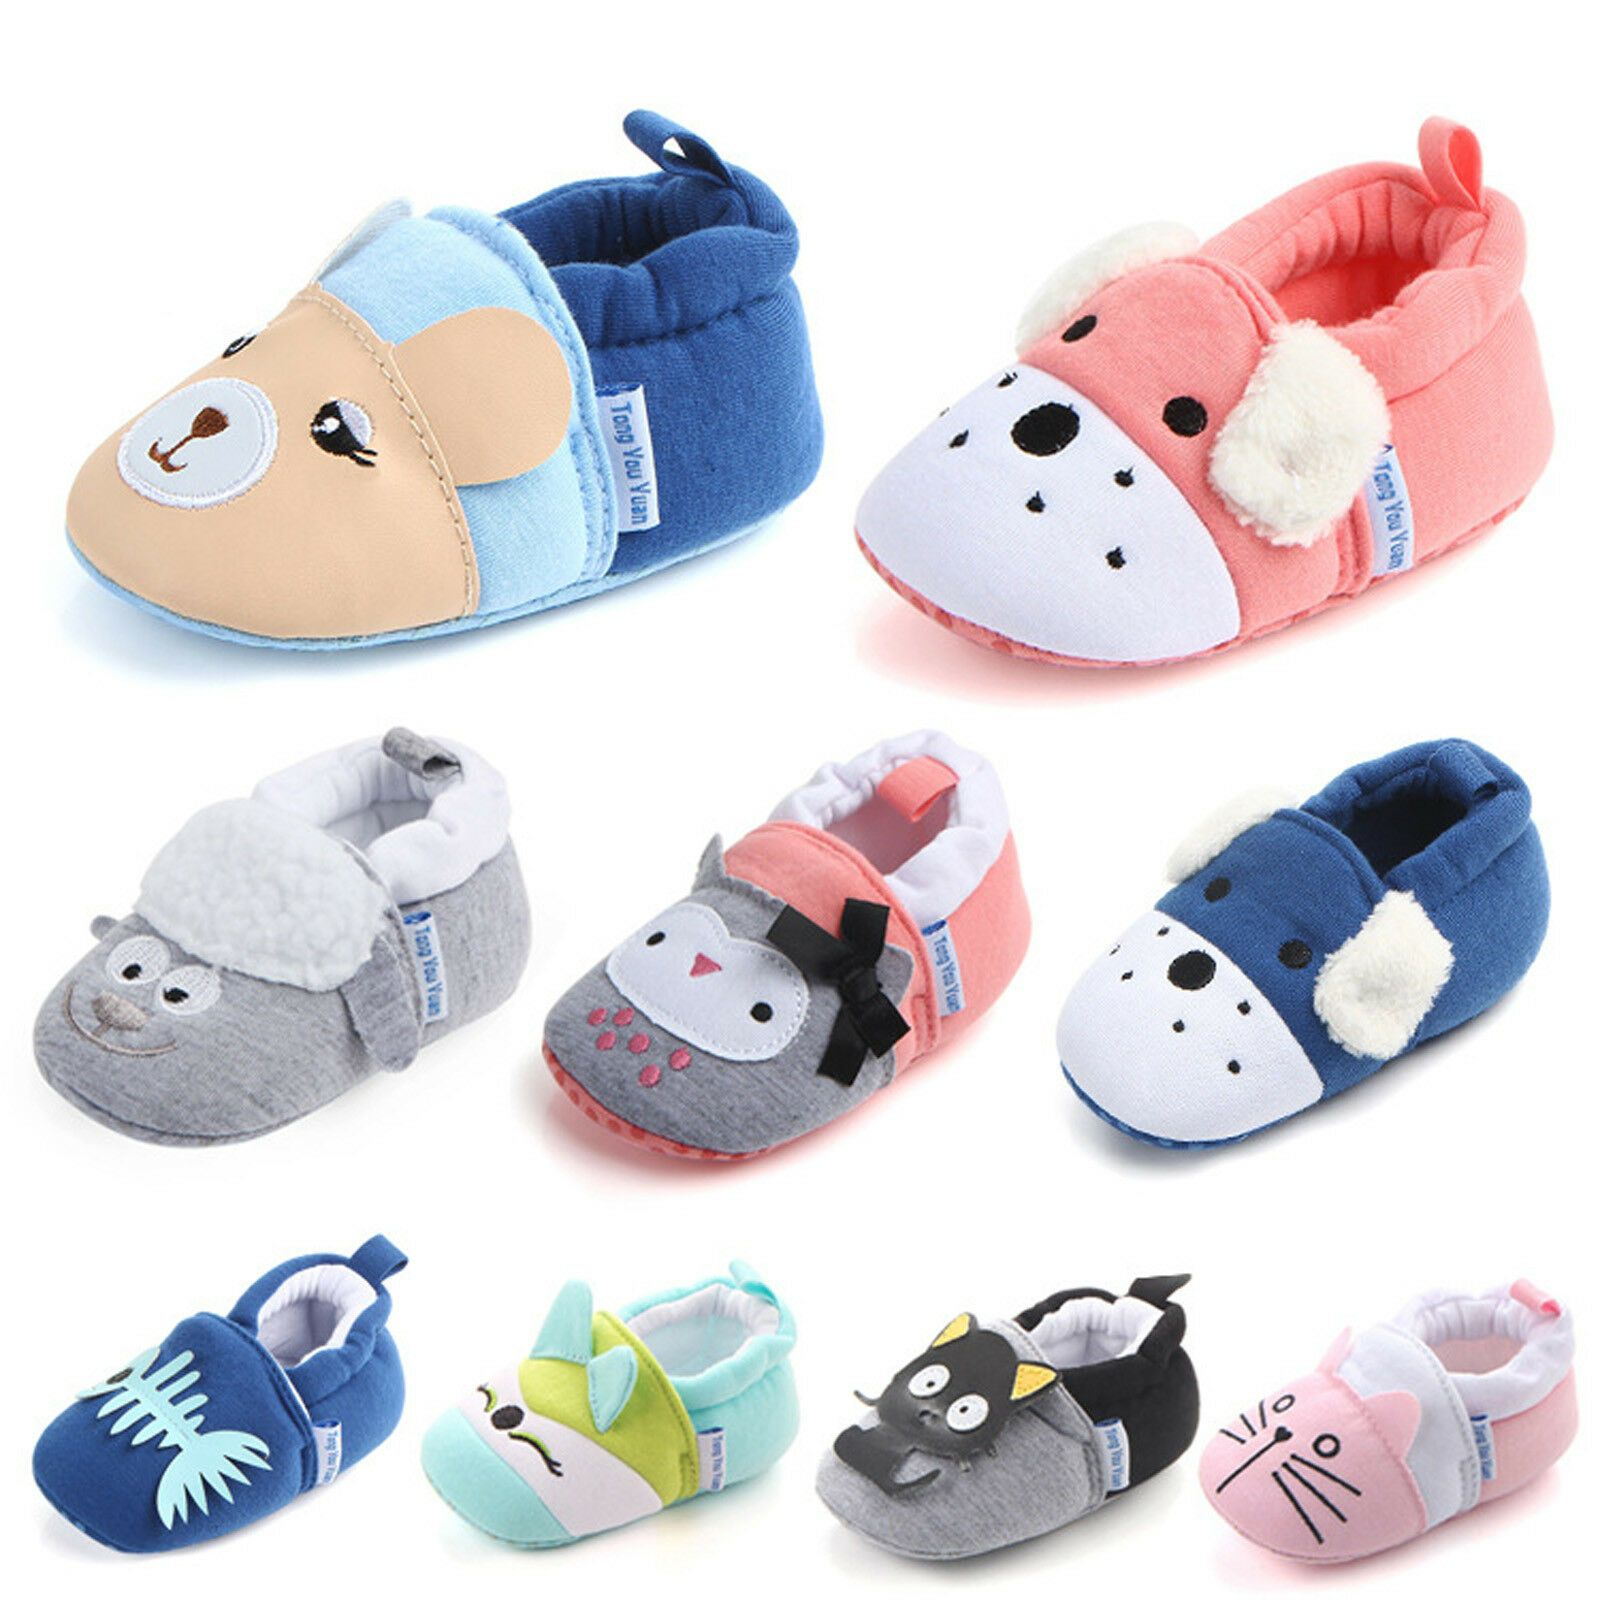 Infant Unisex Boys Girls Soft Sole Anti Slip Crib Shoes Soft Sole Cute Prewalker